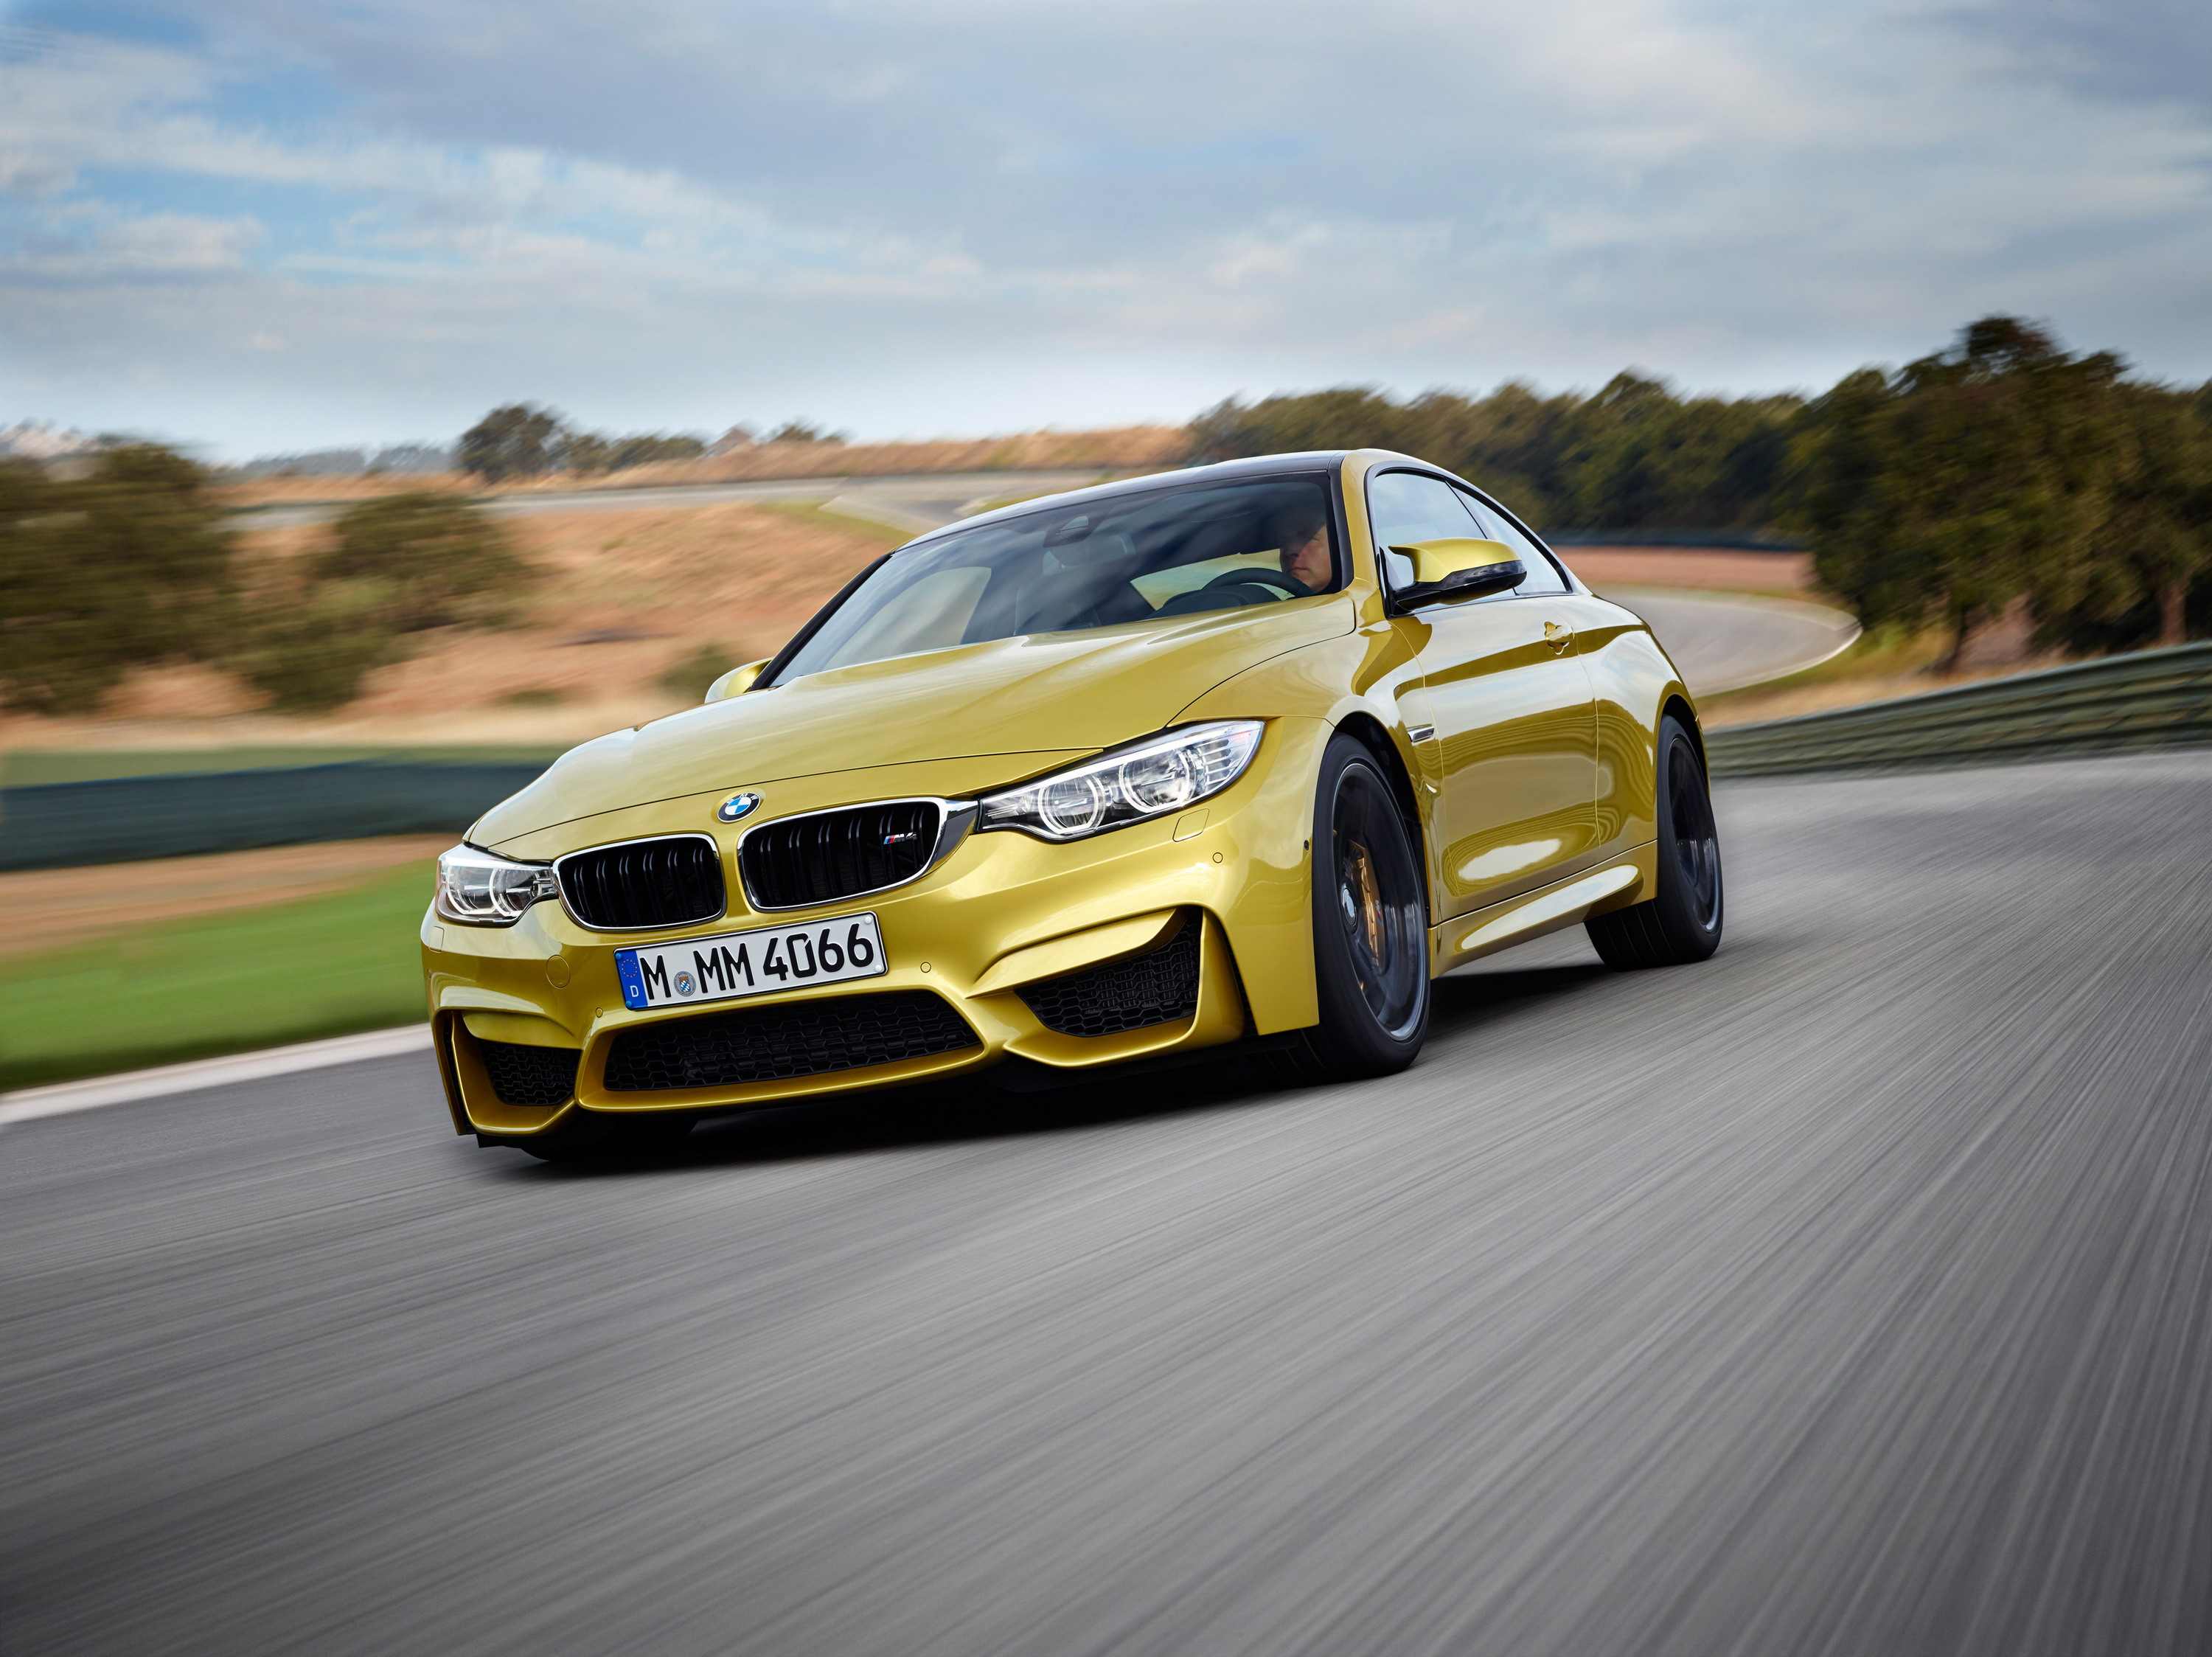 2014 Bmw M4 With M Performance Aerodynamic Parts Top Speed